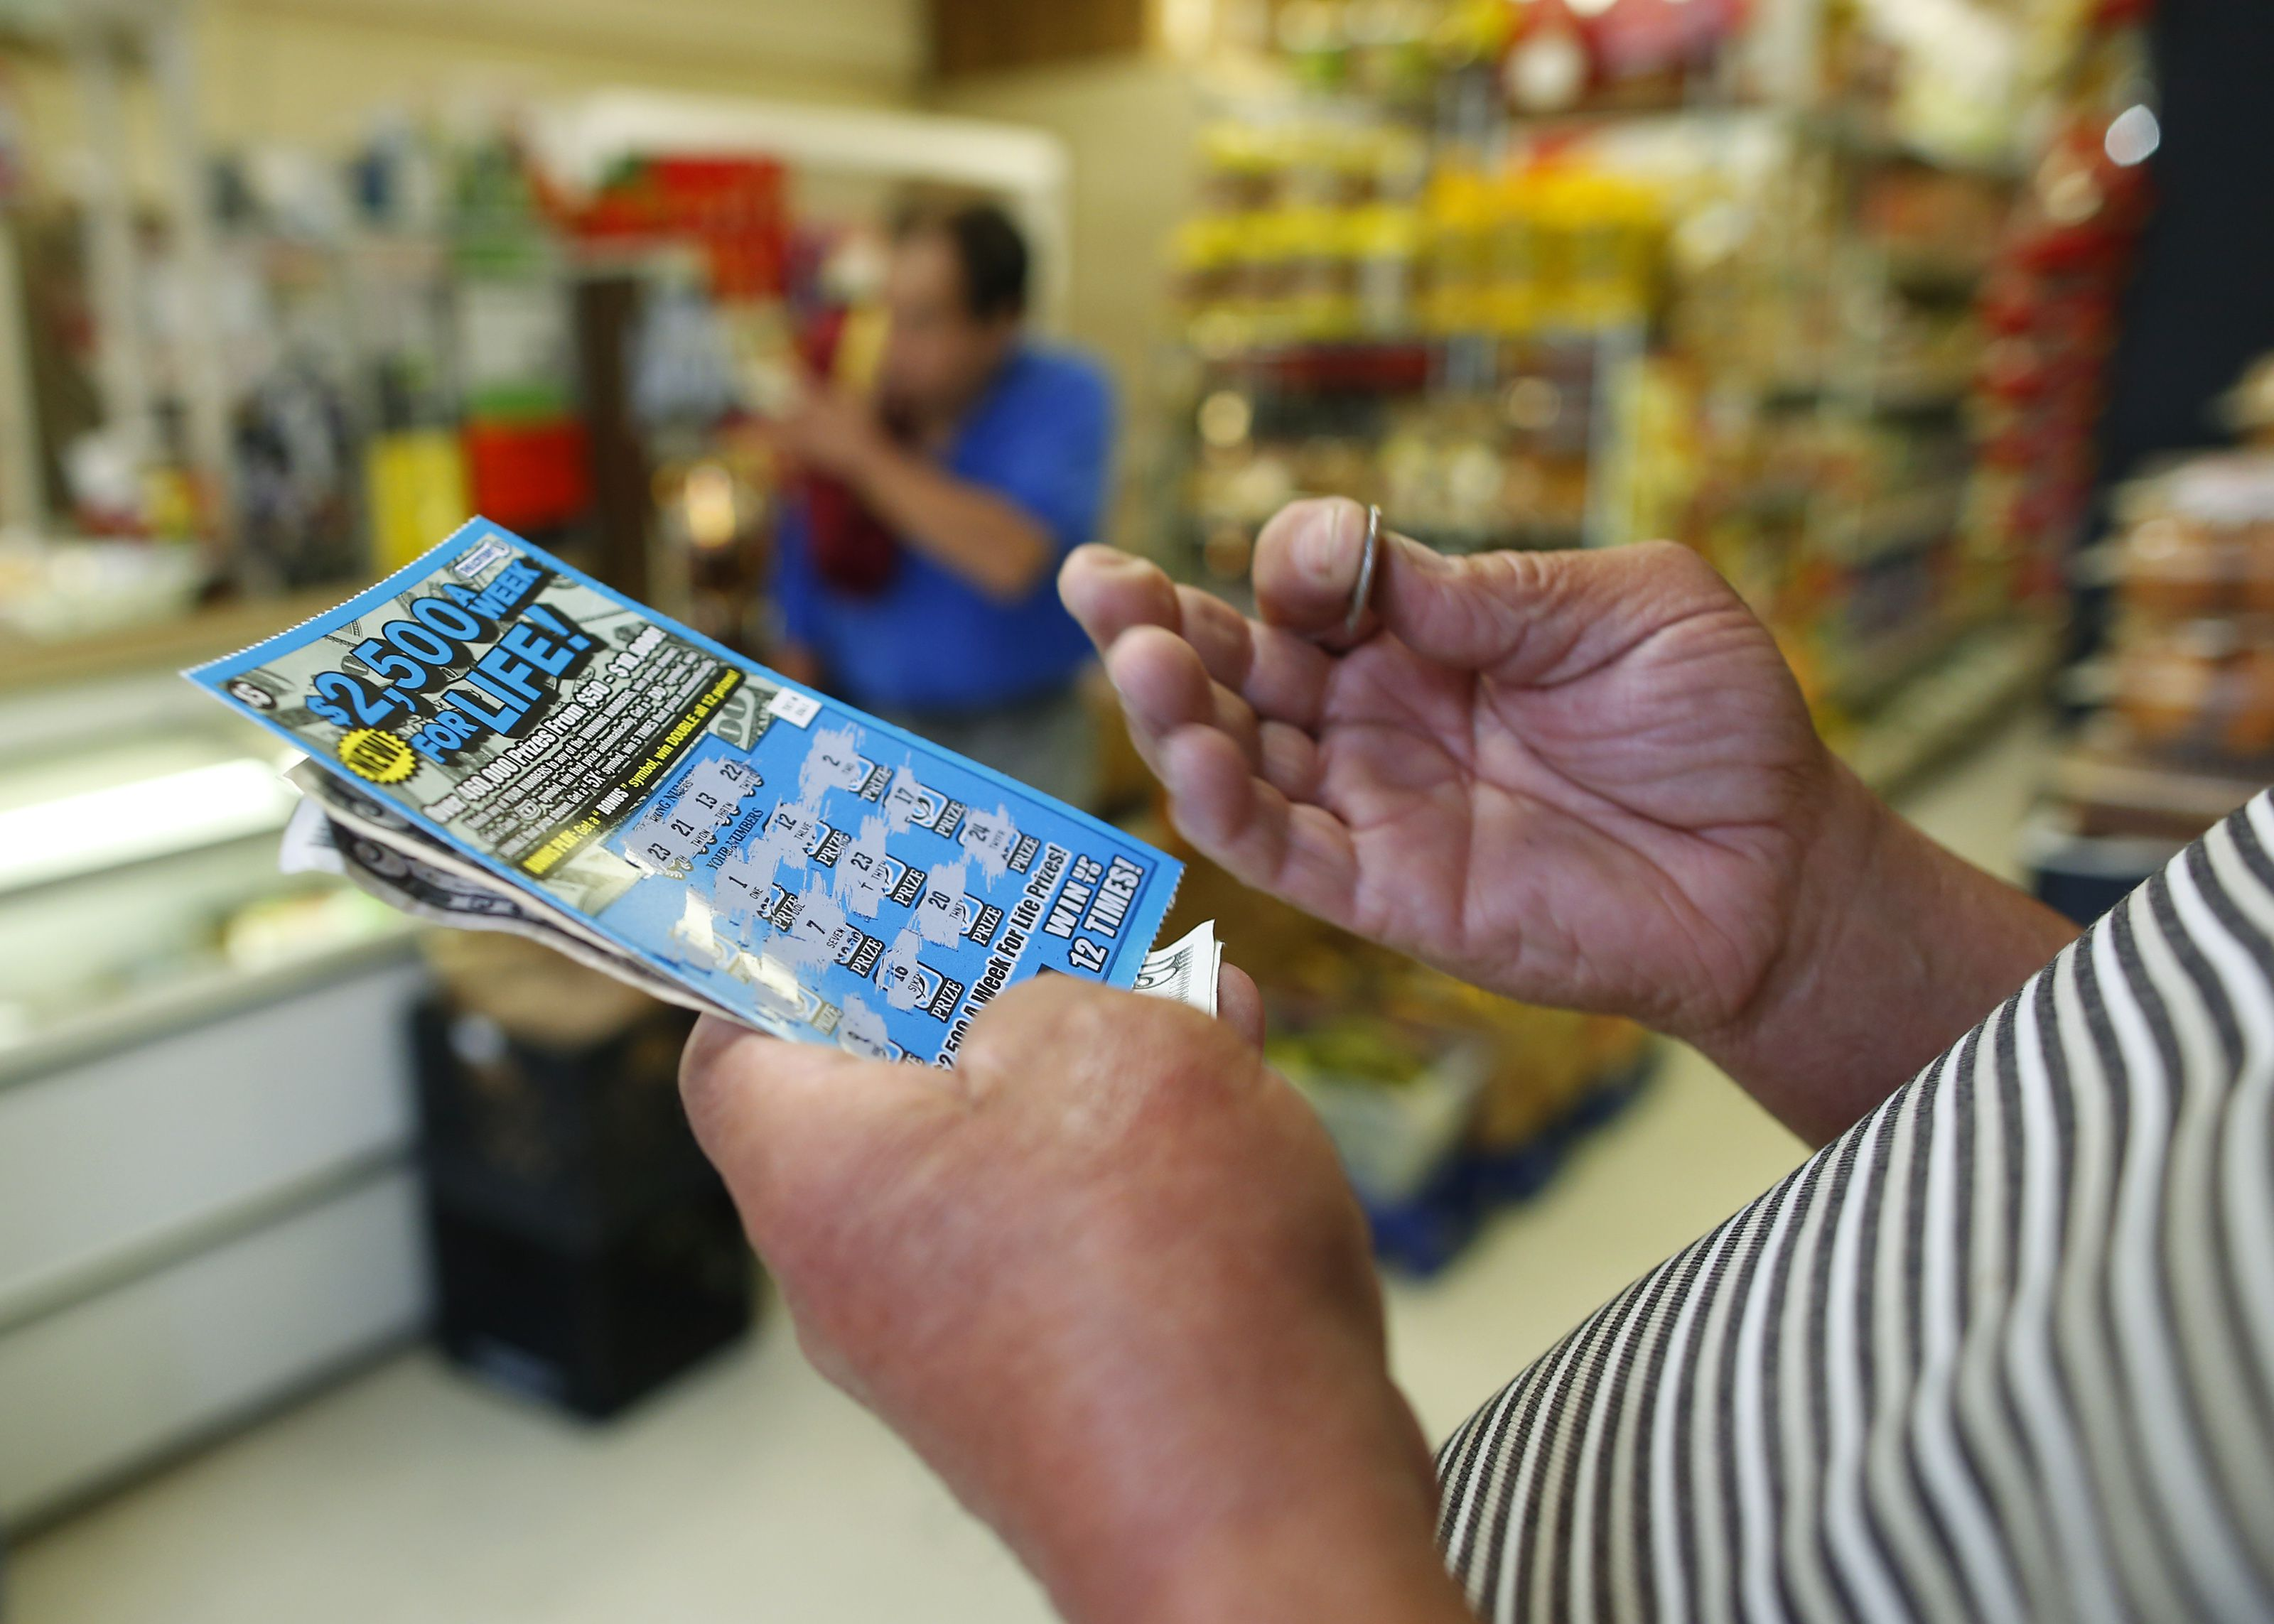 Best chance to win big at Mass  lottery? Expensive scratch